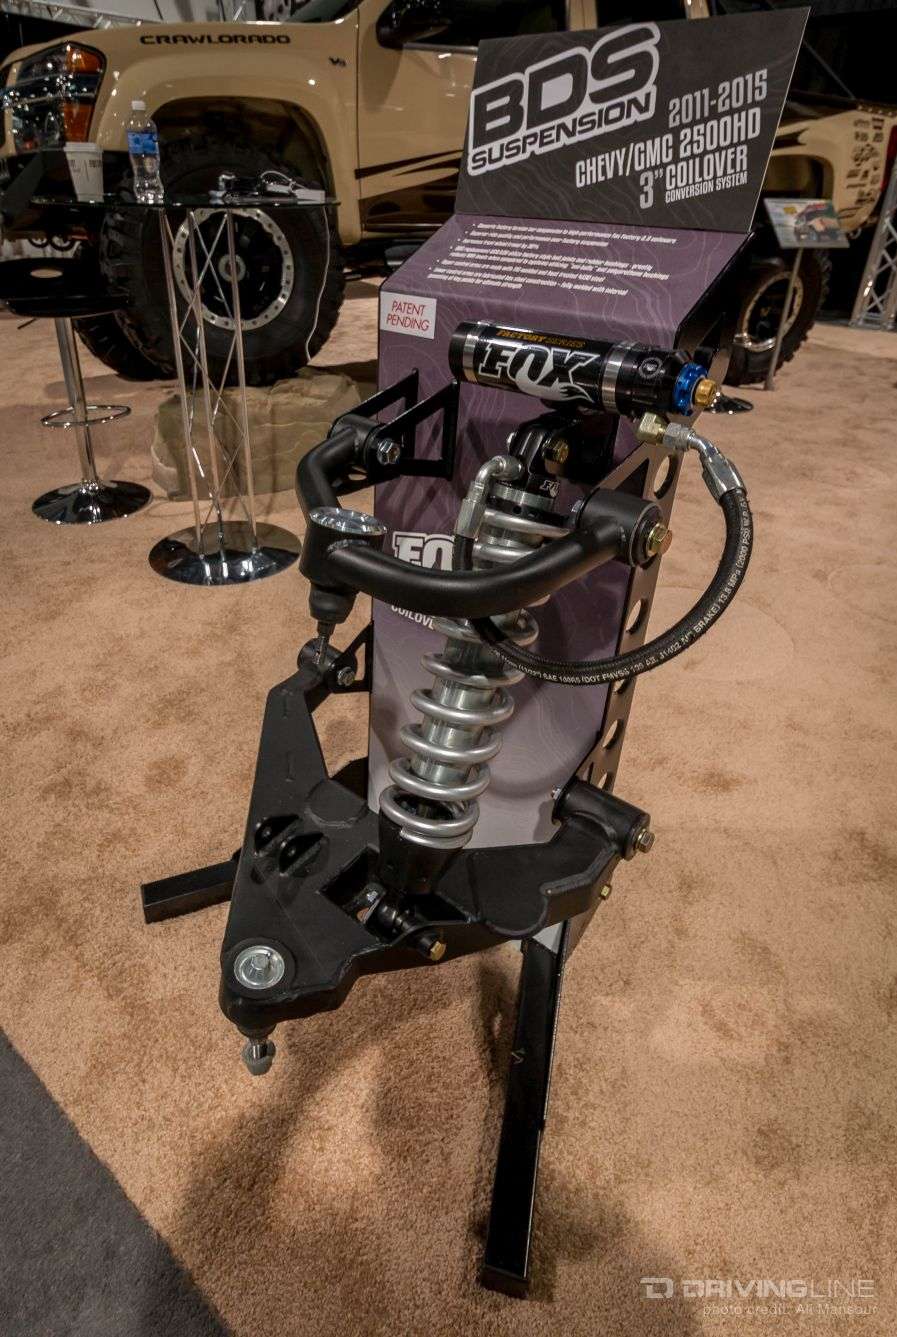 top 10 new products of sema 2015  off